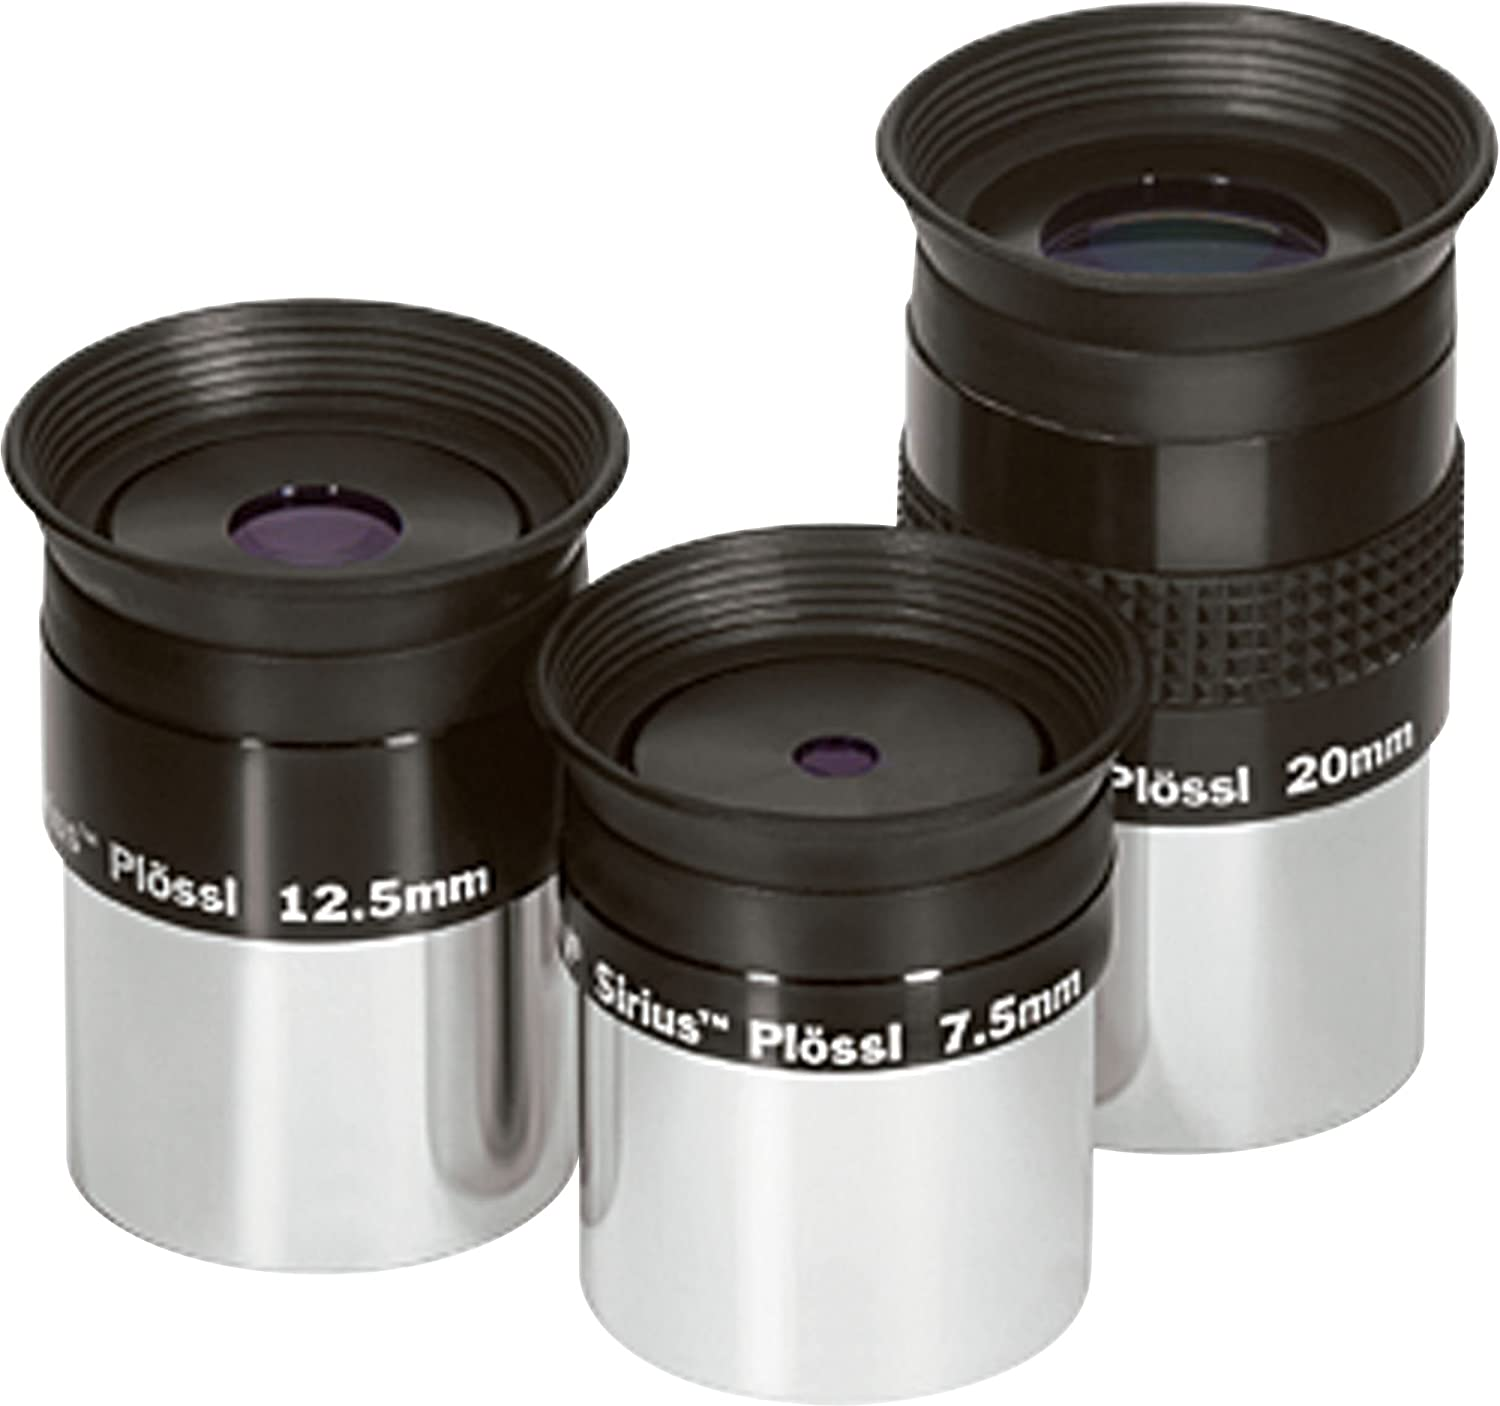 7.5mm 12.5mm 20mm Set Sirius Plossl Eyepieces Orion